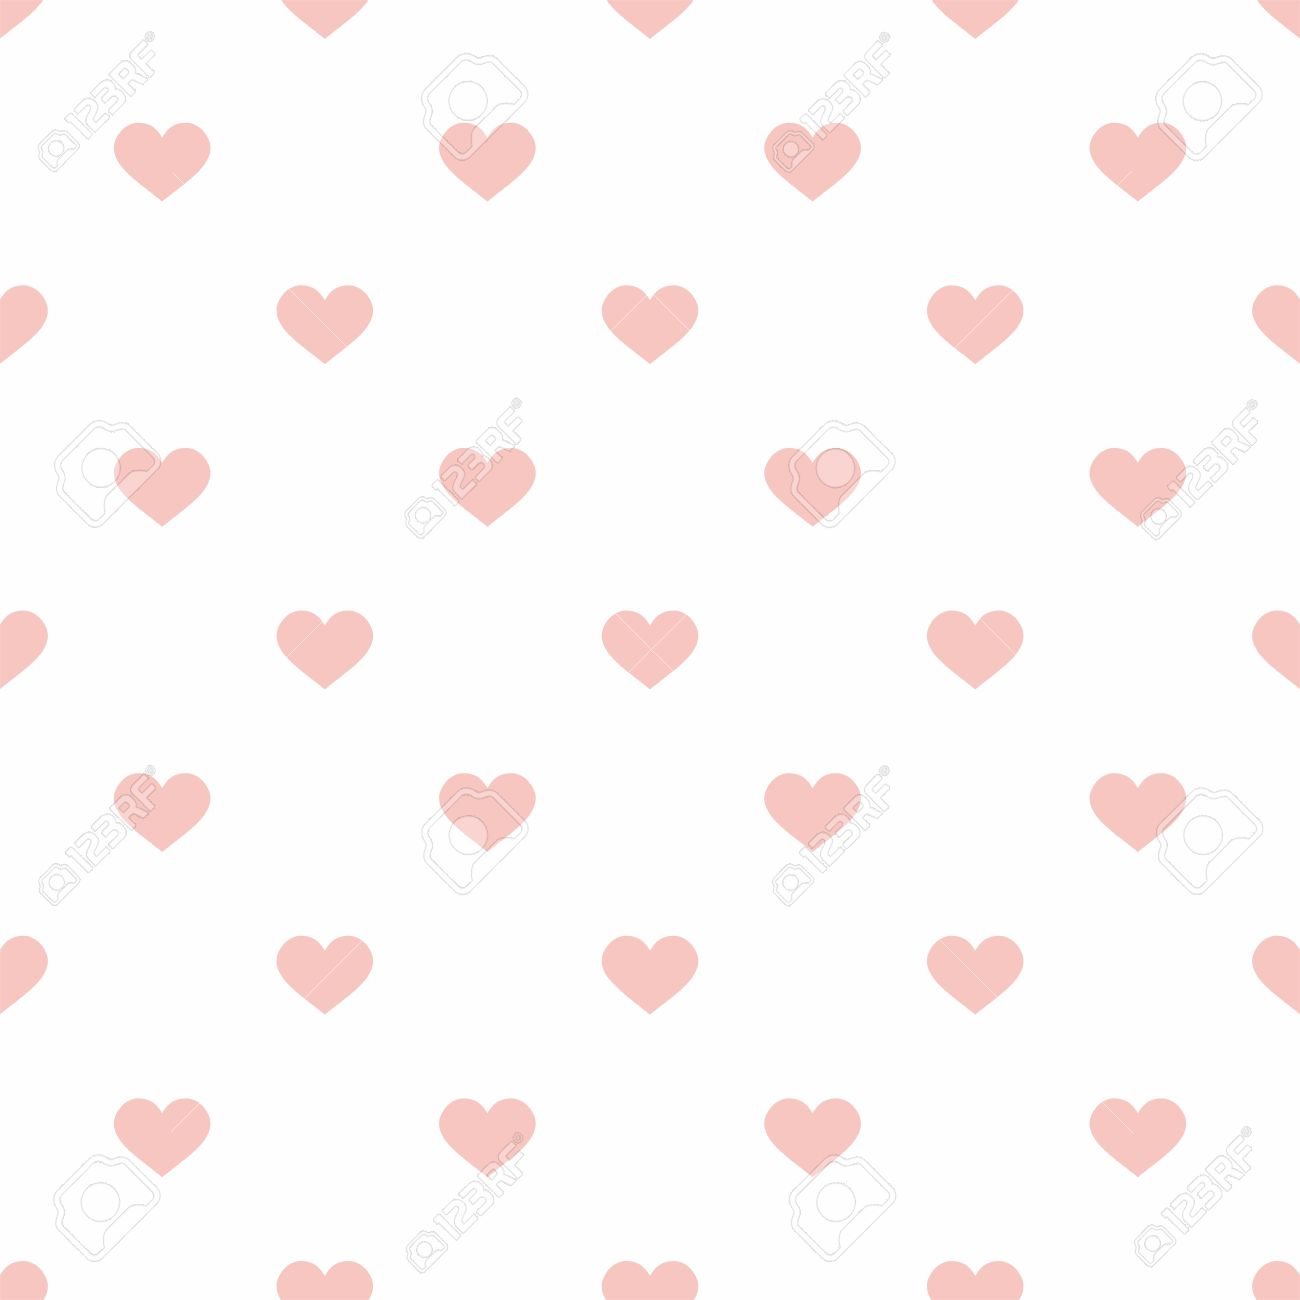 Pastel Tile Vector Pattern With Pink Hearts On A White Background For Seamless Decoration Wallpaper Stock